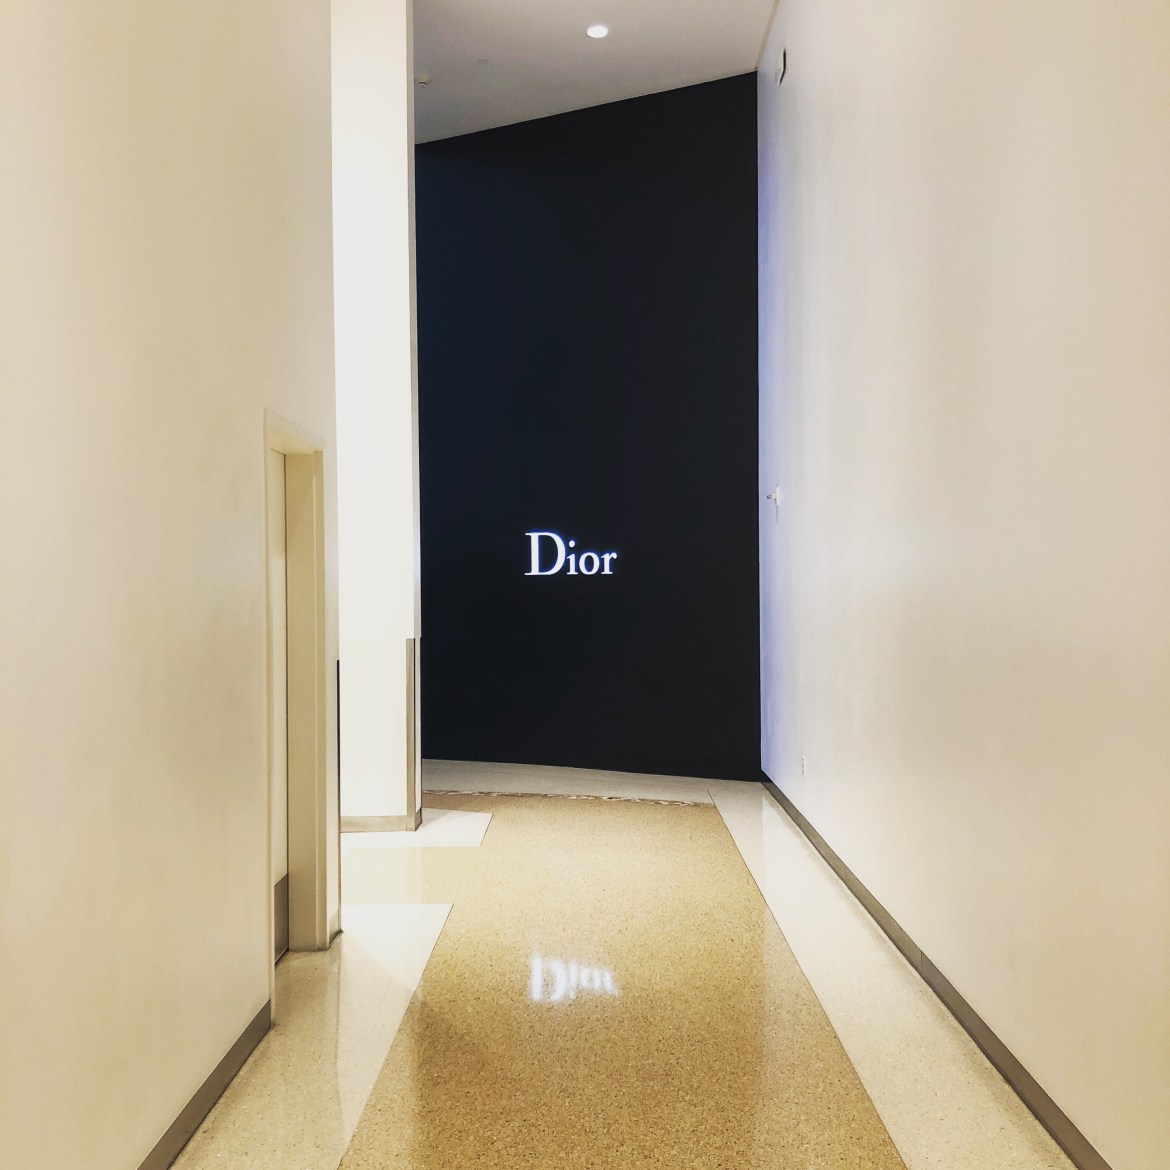 A view of Dior from the men's bathroom at Crystals / CityCenter Las Vegas